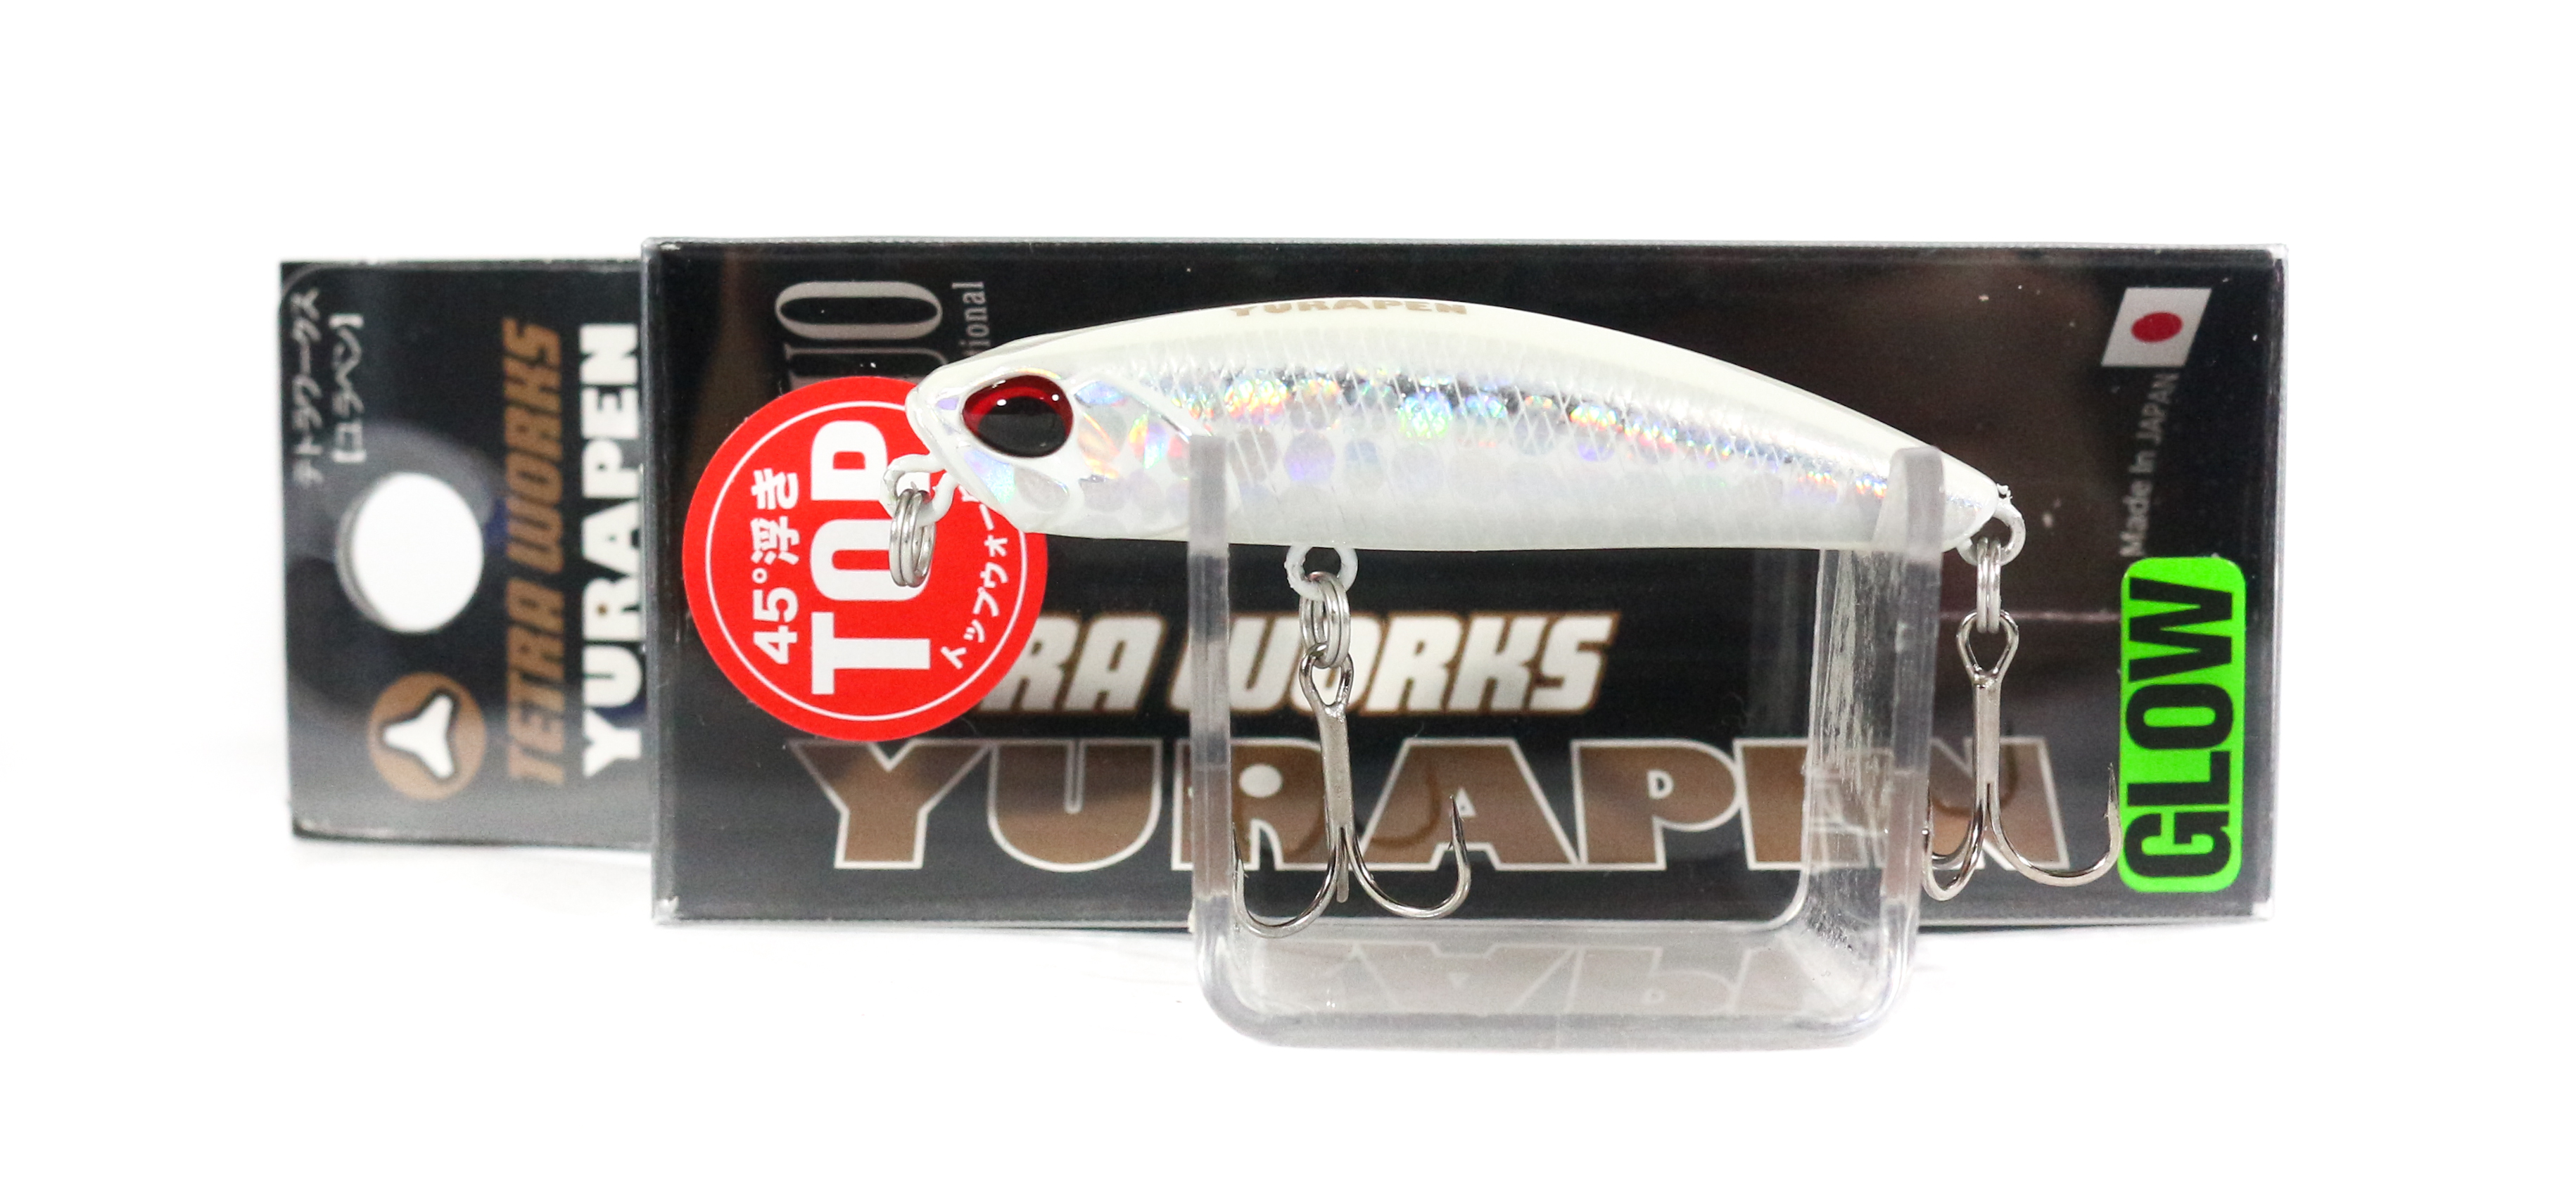 Duo Tetra Works Yurapen 48 mm Floating Lure AQA0111 (6571)